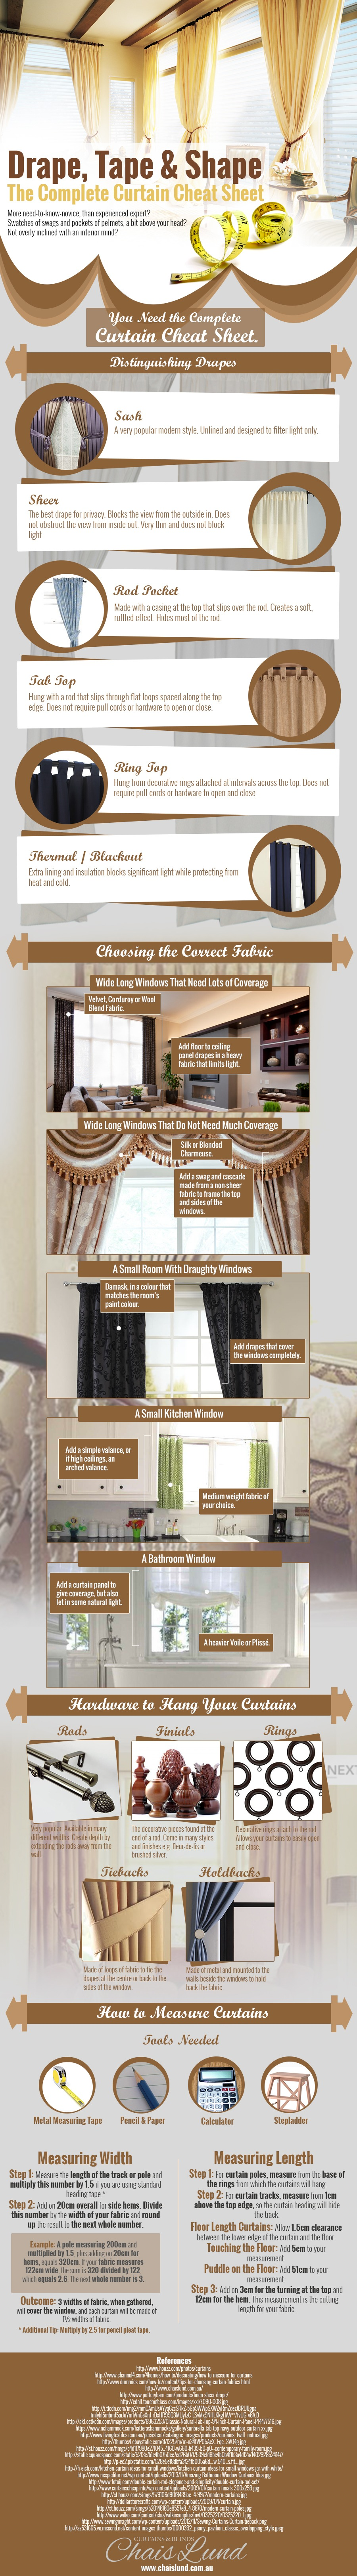 the complete curtain cheat sheet lushes curtains blog